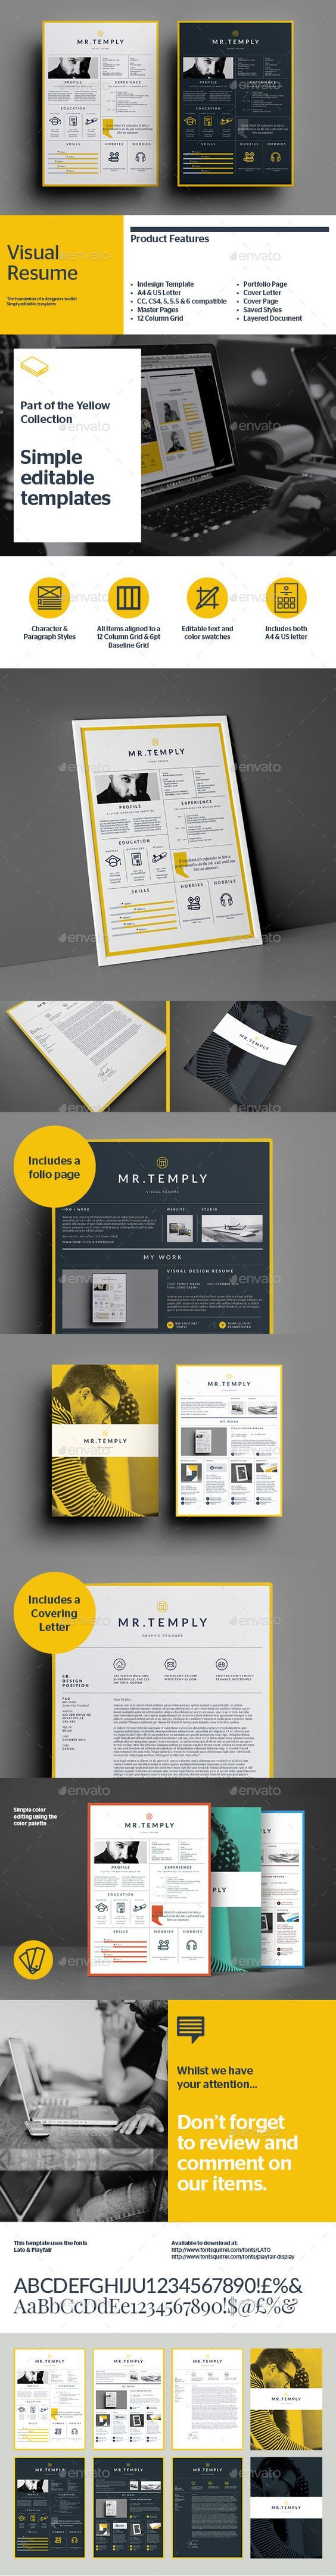 The Visual Resume template is an Indesign brochure template for individuals working in creative fields that require adding images to their written CV. This resume will really knock the socks off a potential employer.: